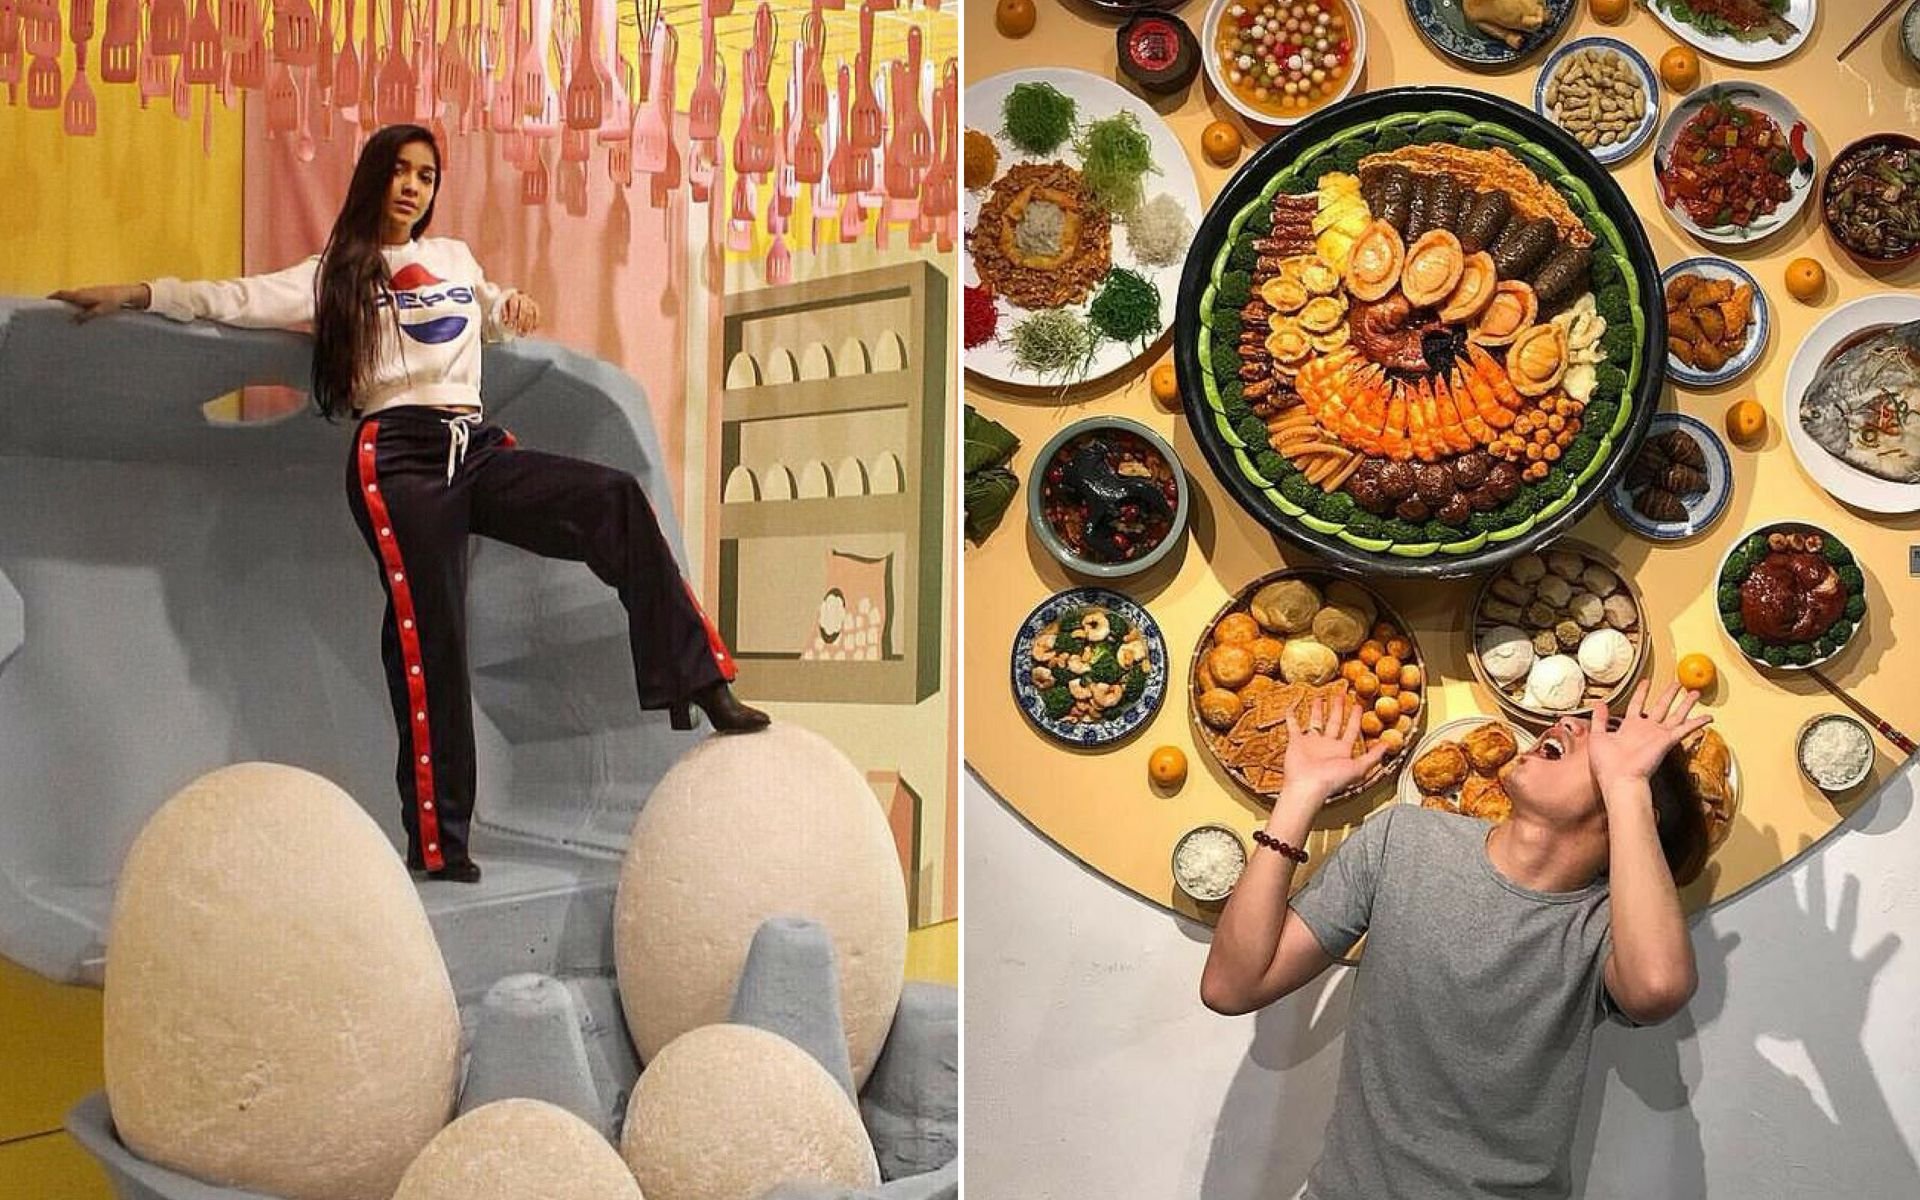 11 Photogenic Food Museums To Visit To Get Everyone Drooling On Instagram